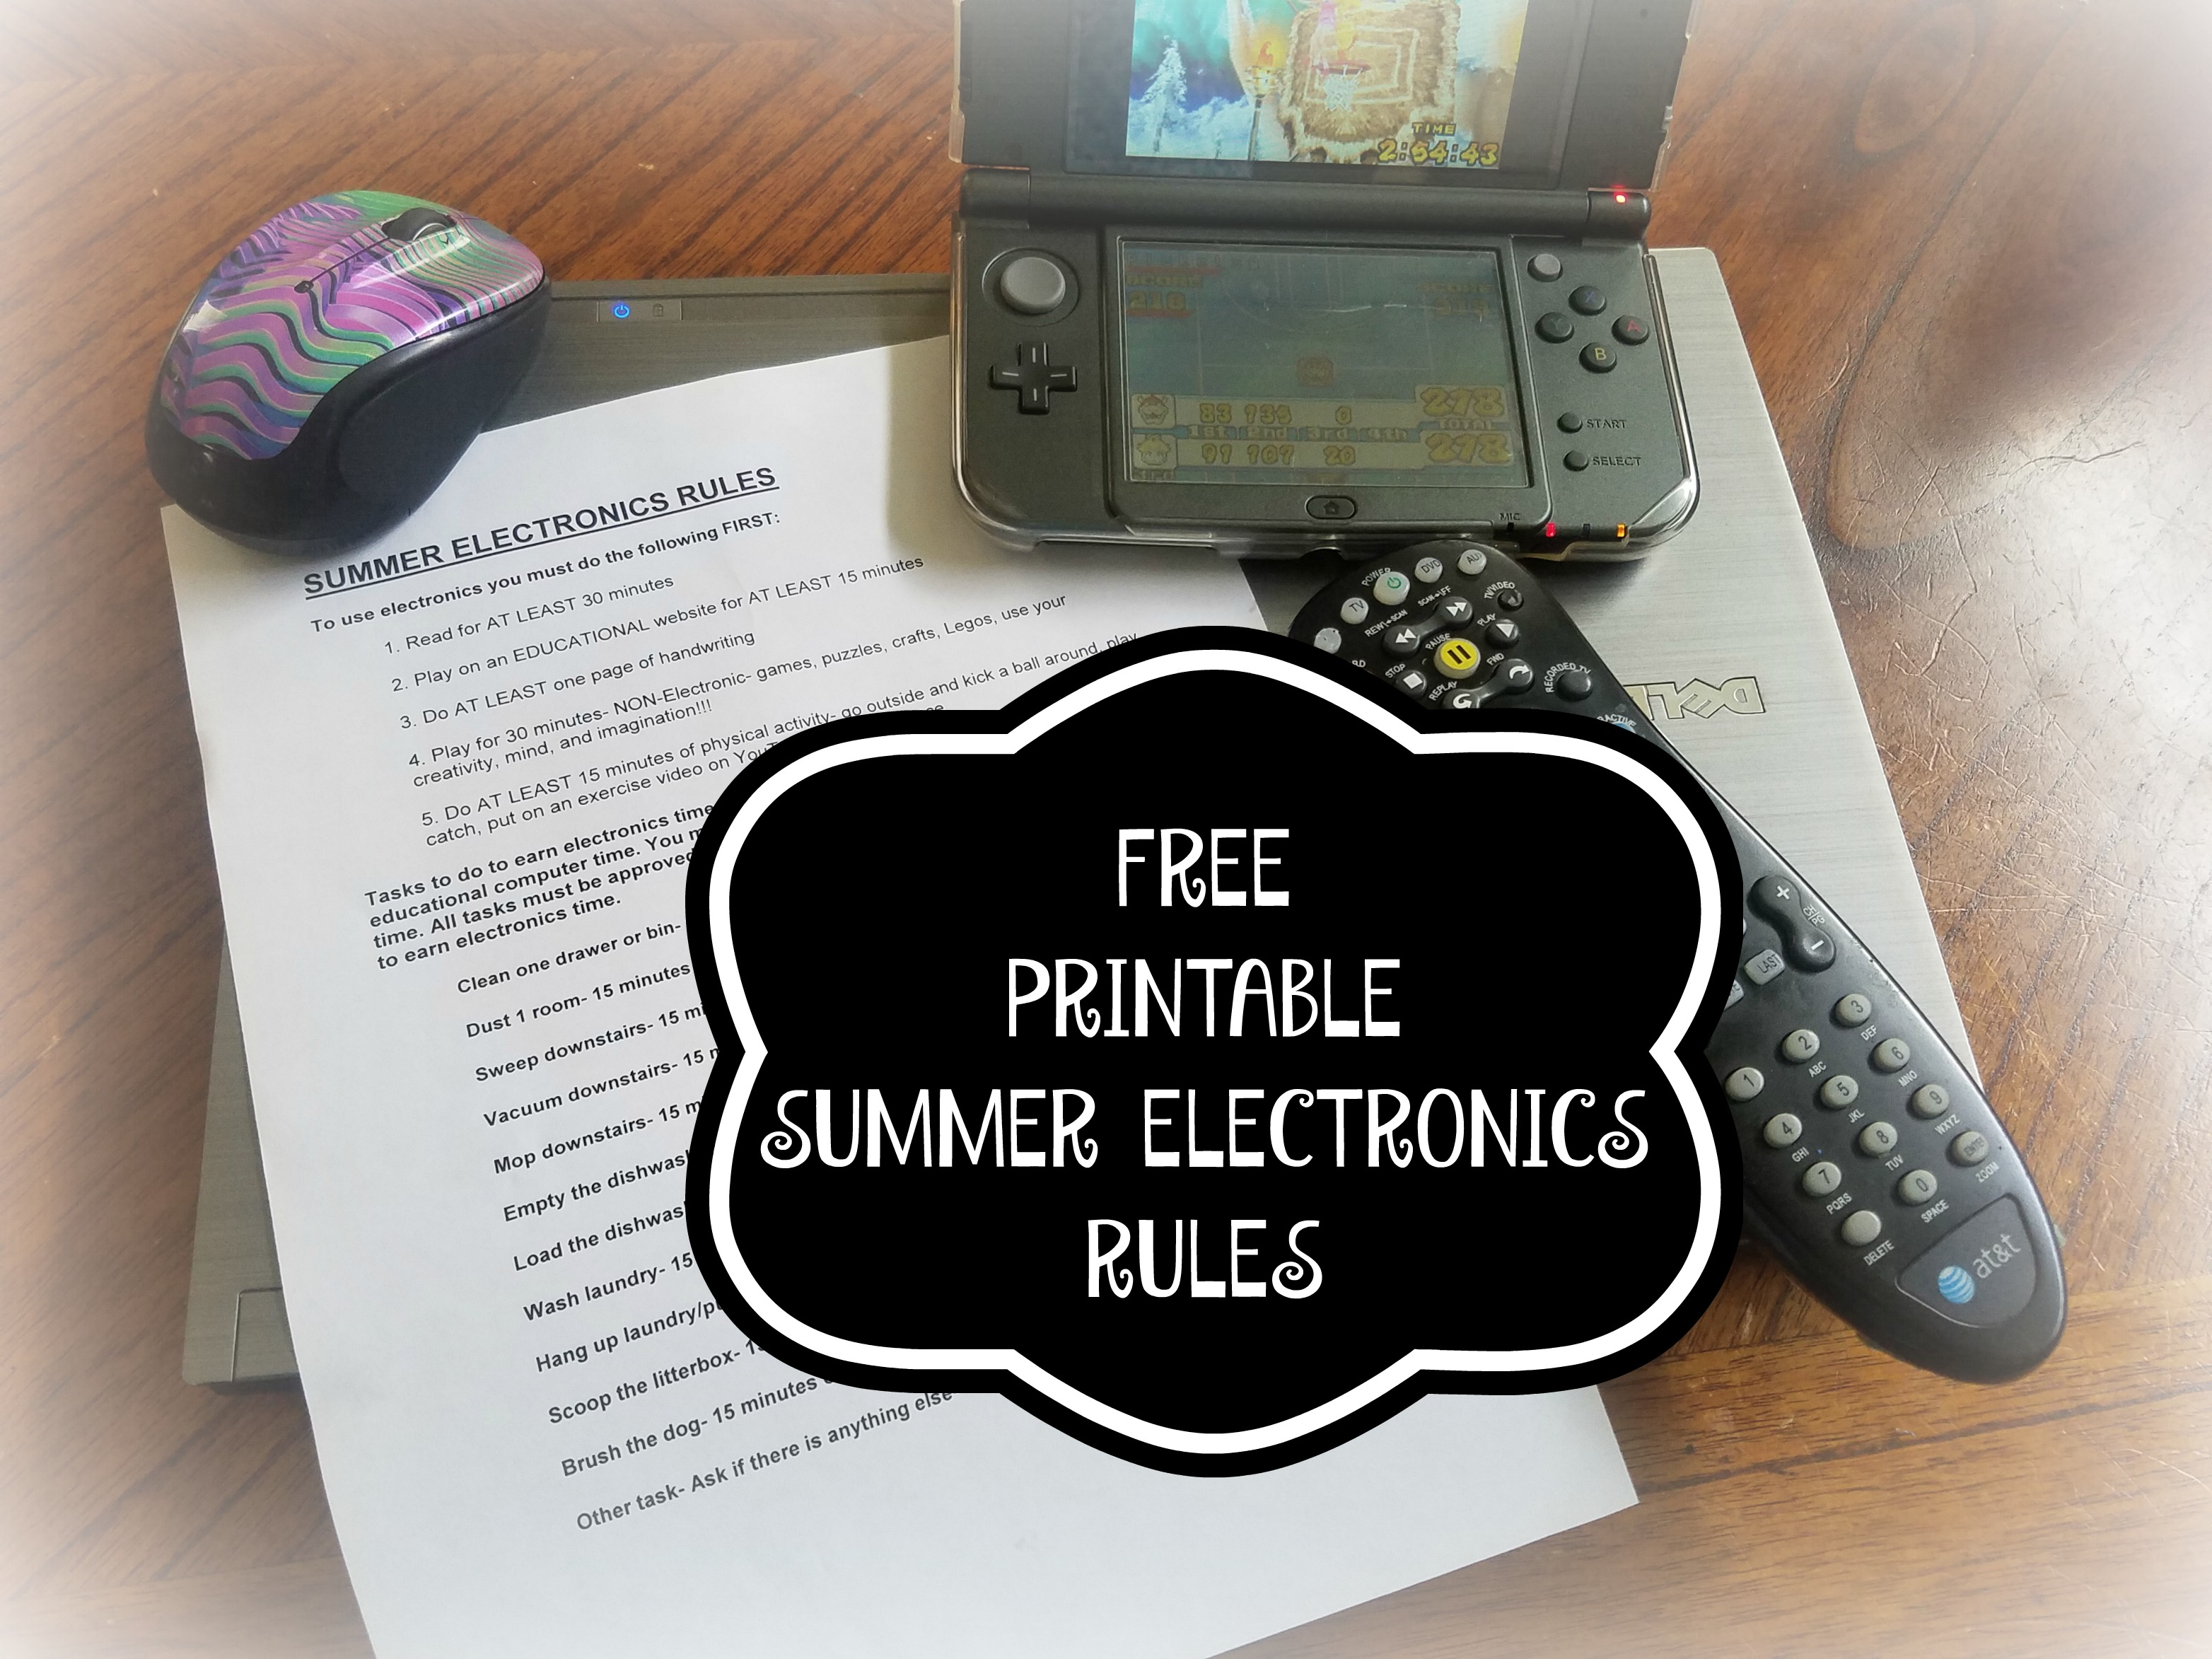 graphic regarding Summer Rules Printable referred to as Free of charge PRINTABLE Summer season ELECTRONICS Legislation - Coris Relaxed Corner